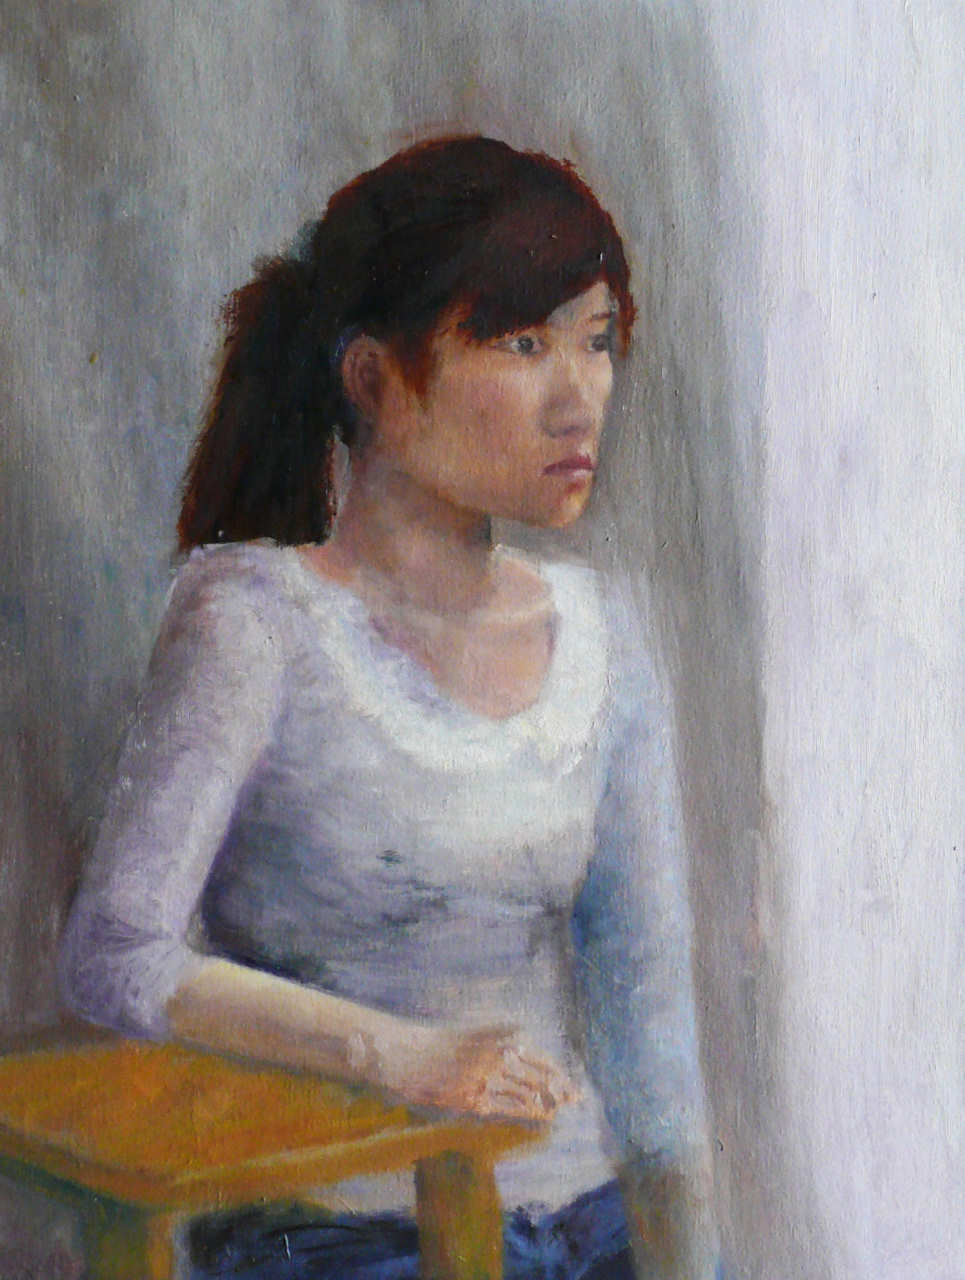 Oil on canvas. 2011